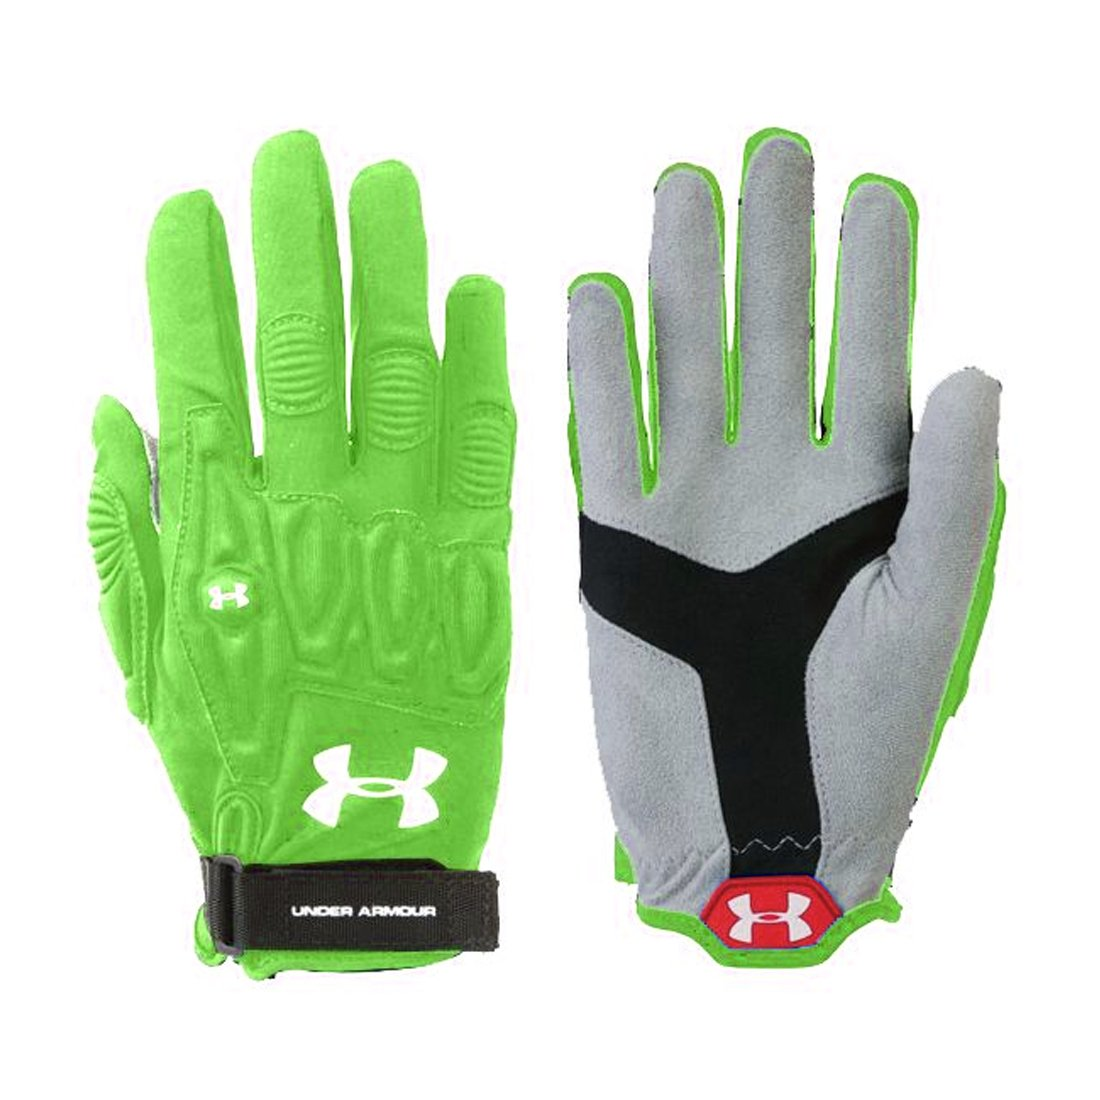 Under Armour Illusion Women's Lacrosse Gloves in Lime Green-Medium